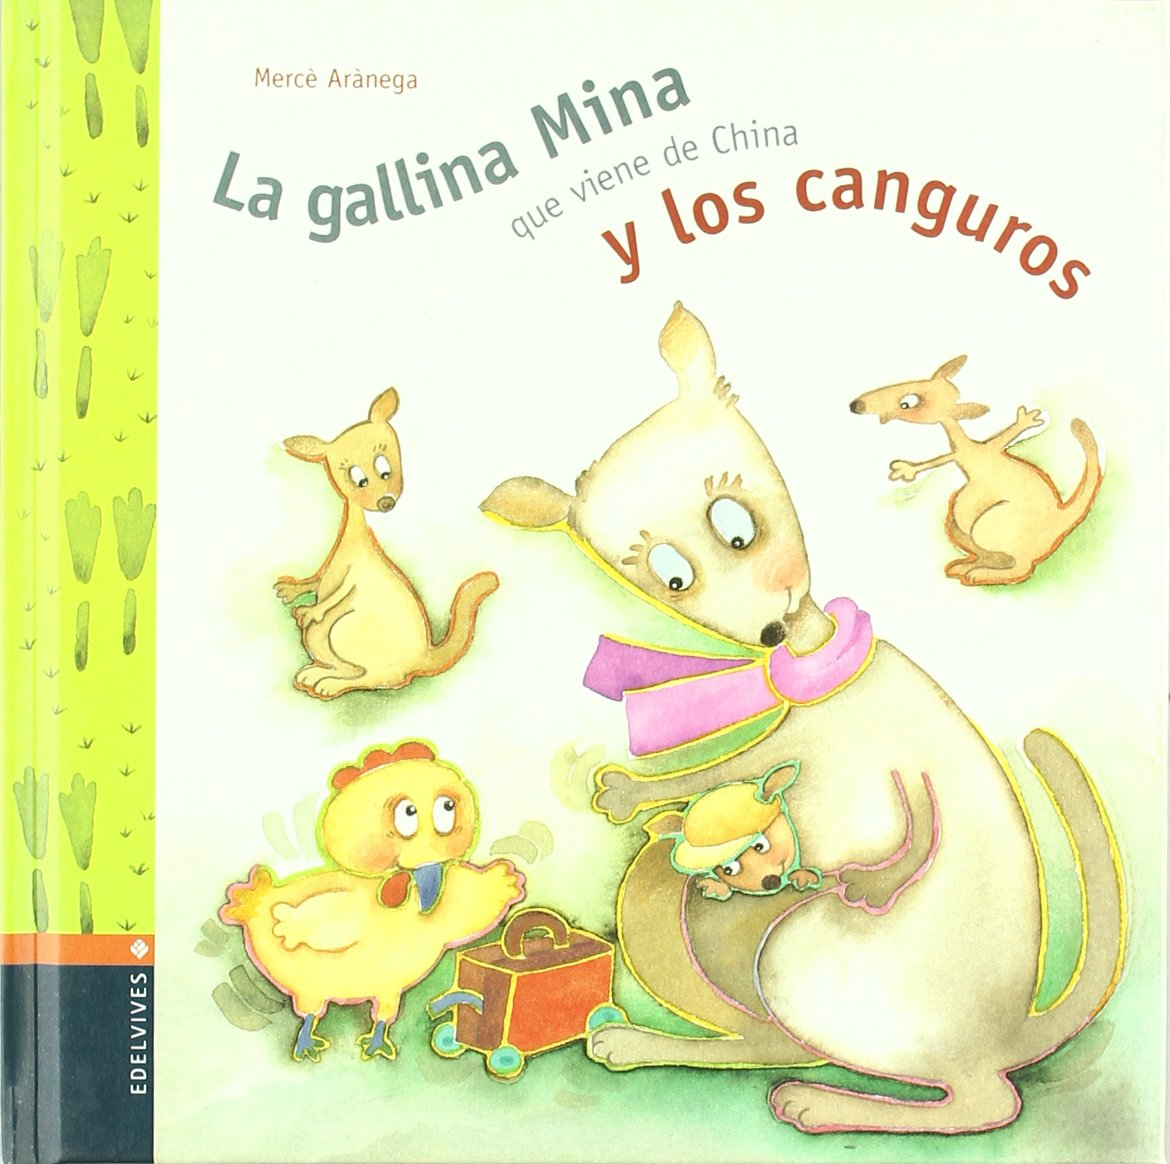 La gallina Mina que viene de China y los canguros (Spanish) Hardcover – January 1, 1900